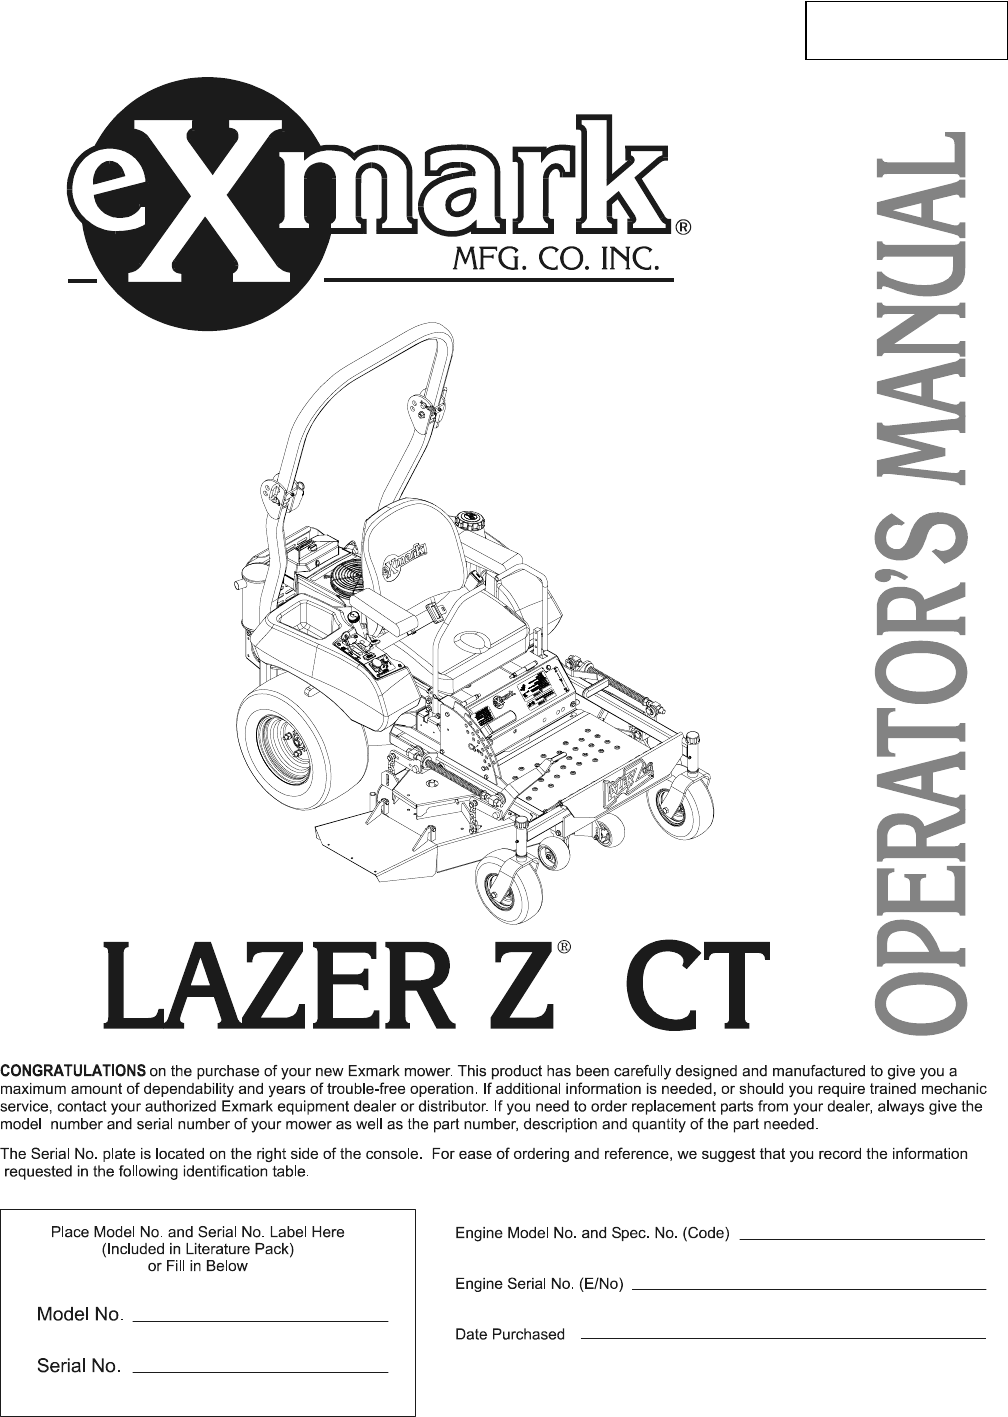 2a16a19e 46fd 4b7f bad9 75dfc22e1169 bg1 exmark lawn mower lazer z ct user guide manualsonline com exmark lazer z wiring schematic at cos-gaming.co